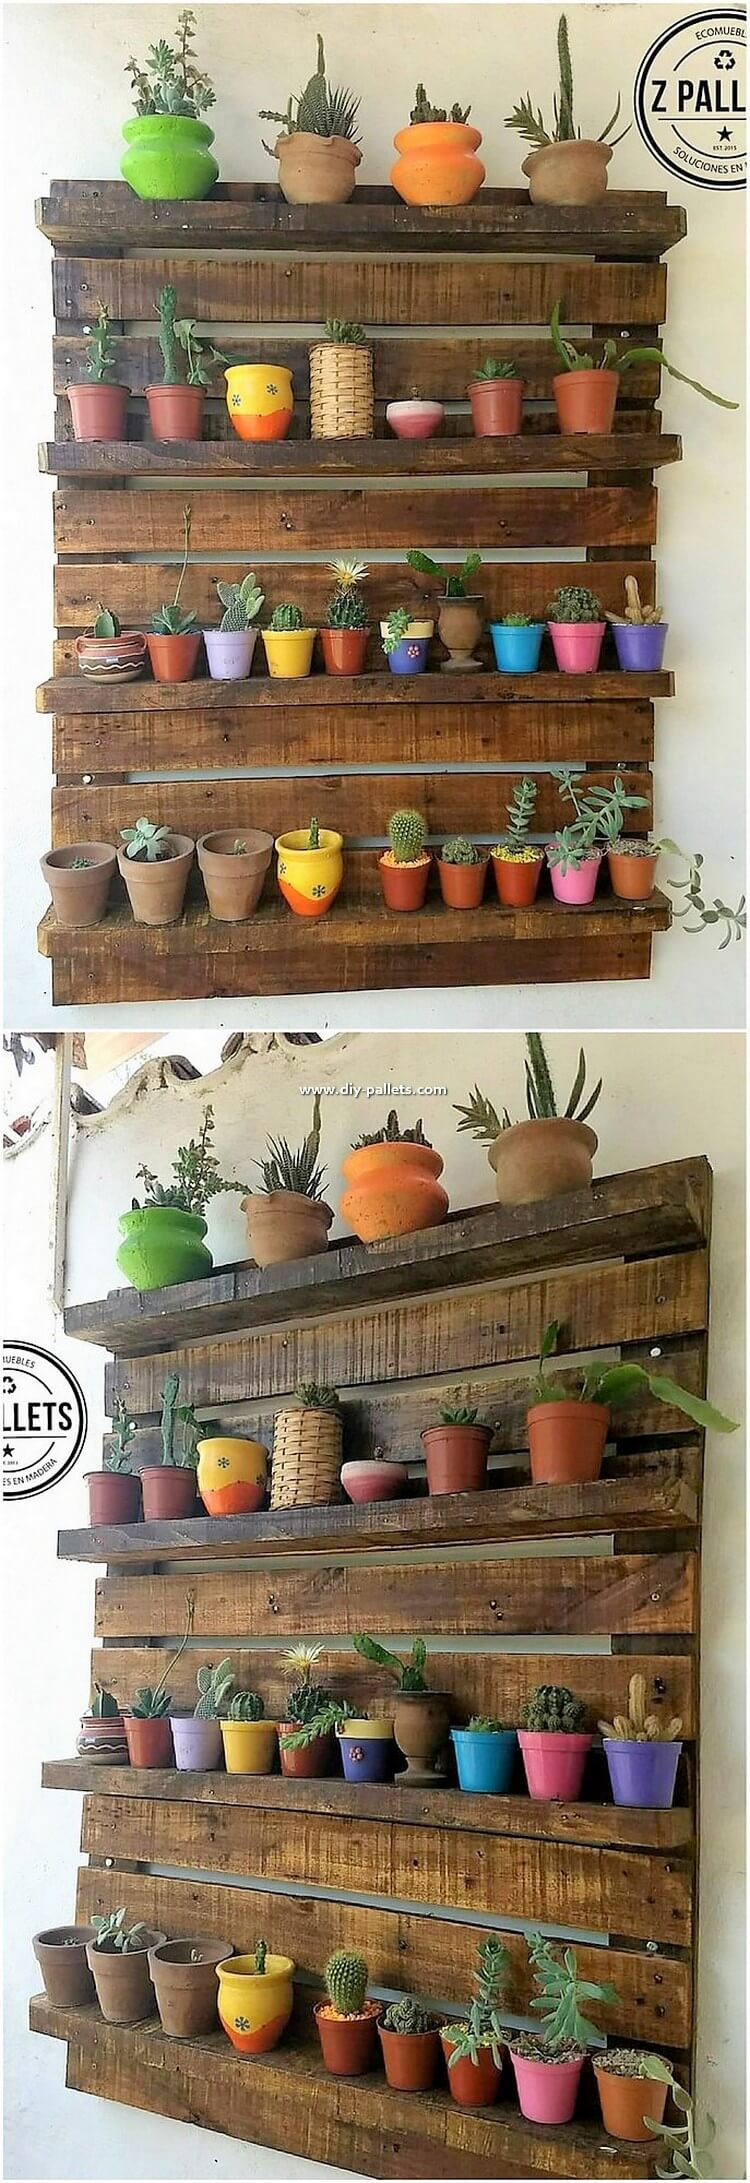 Pallet Wall Planter Pots Stand